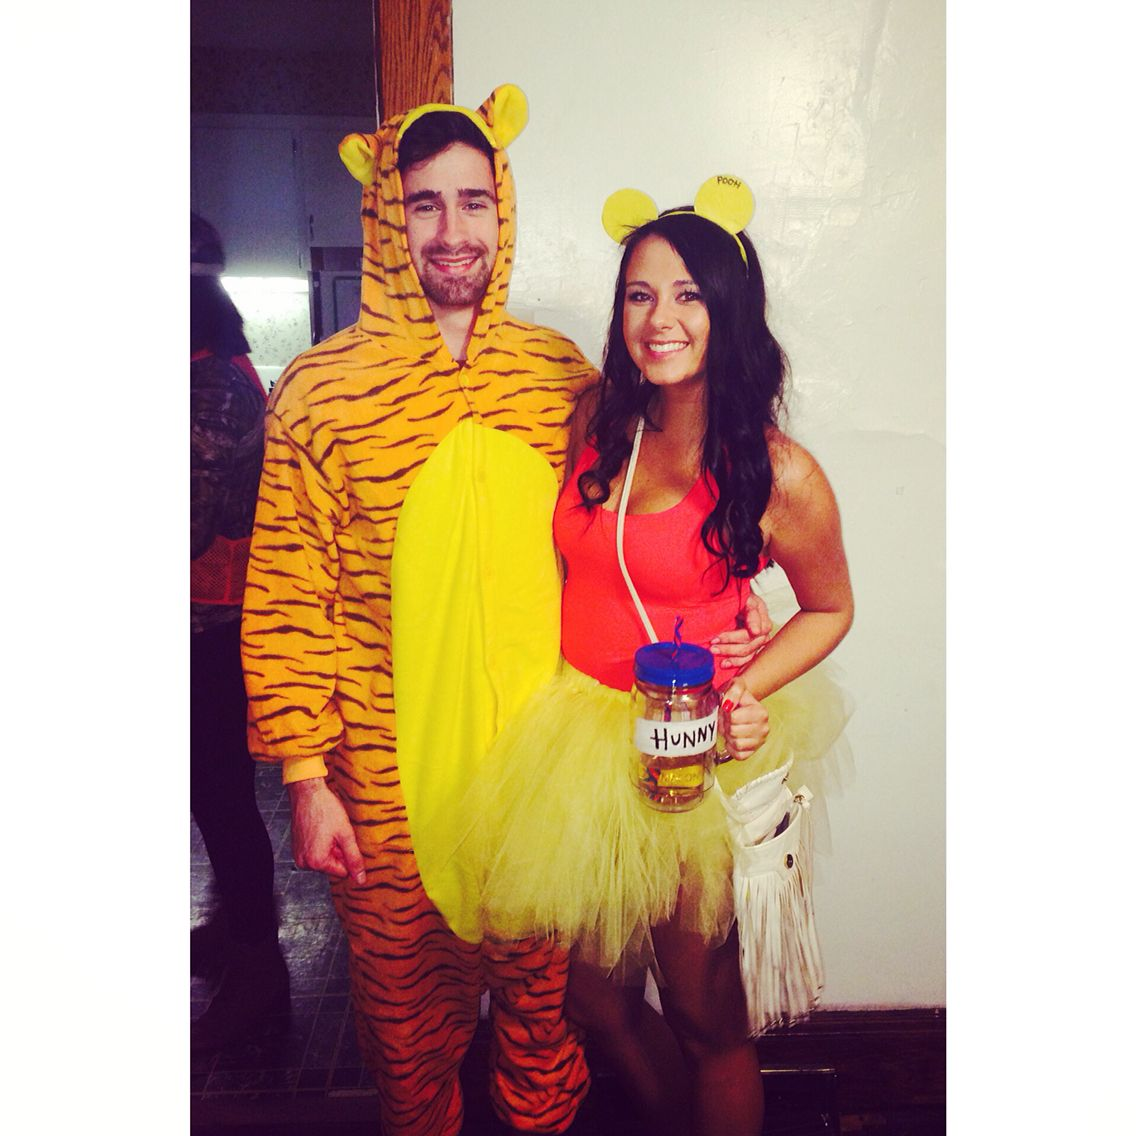 ac34883b1 Winnie the Pooh and Tigger Couple Costume | Holiday ideas | Couple ...